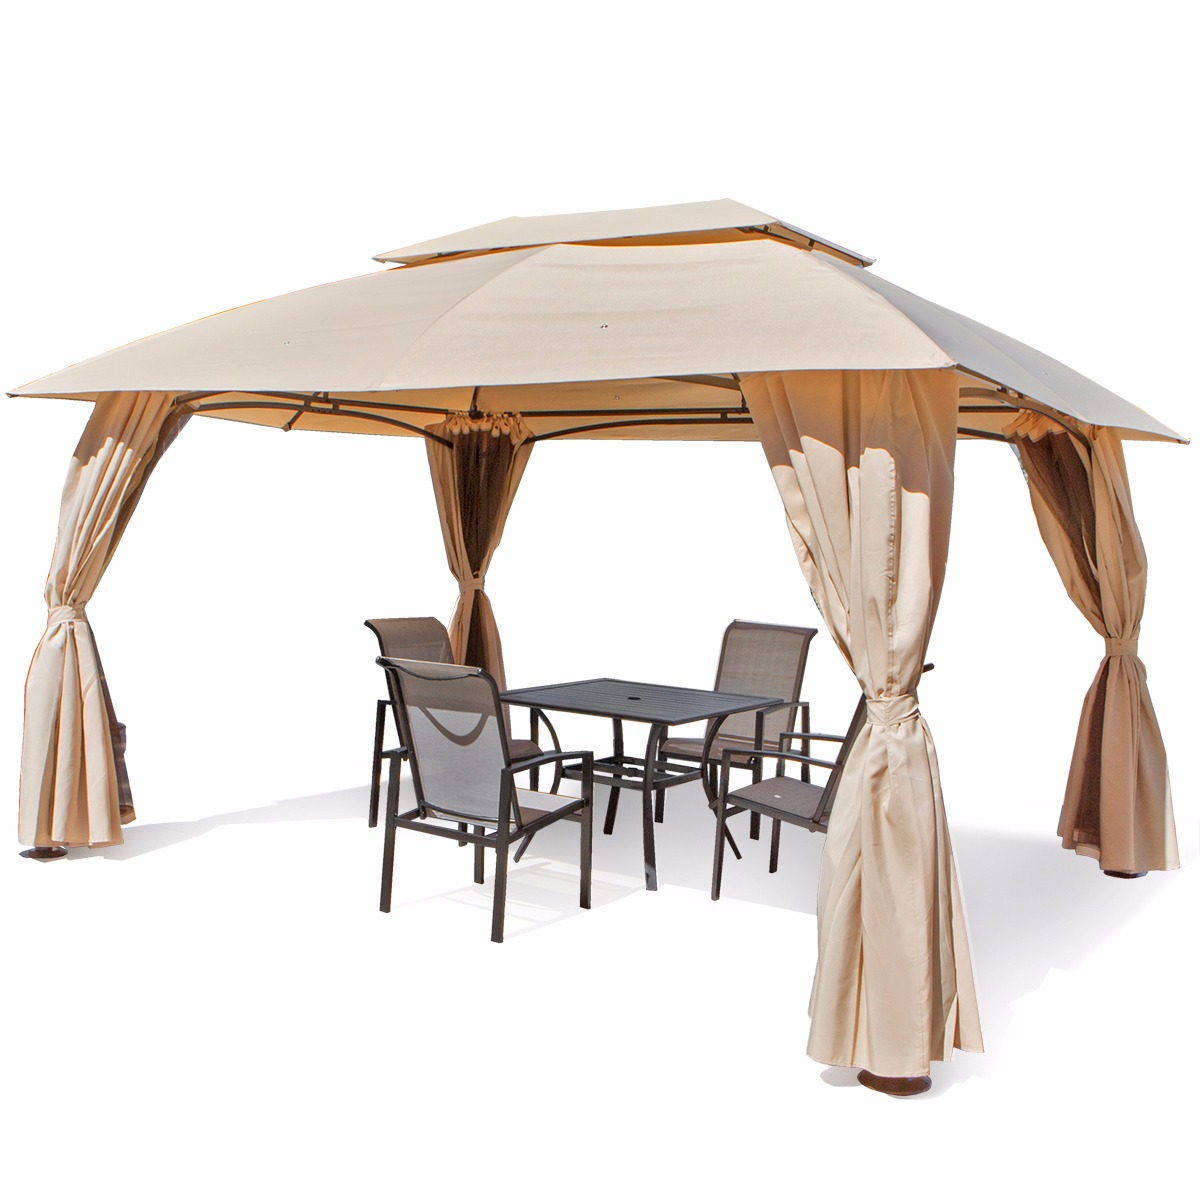 gray cover awning furniture diy patio house with outdoor retractable d netting mosquito finish pin for